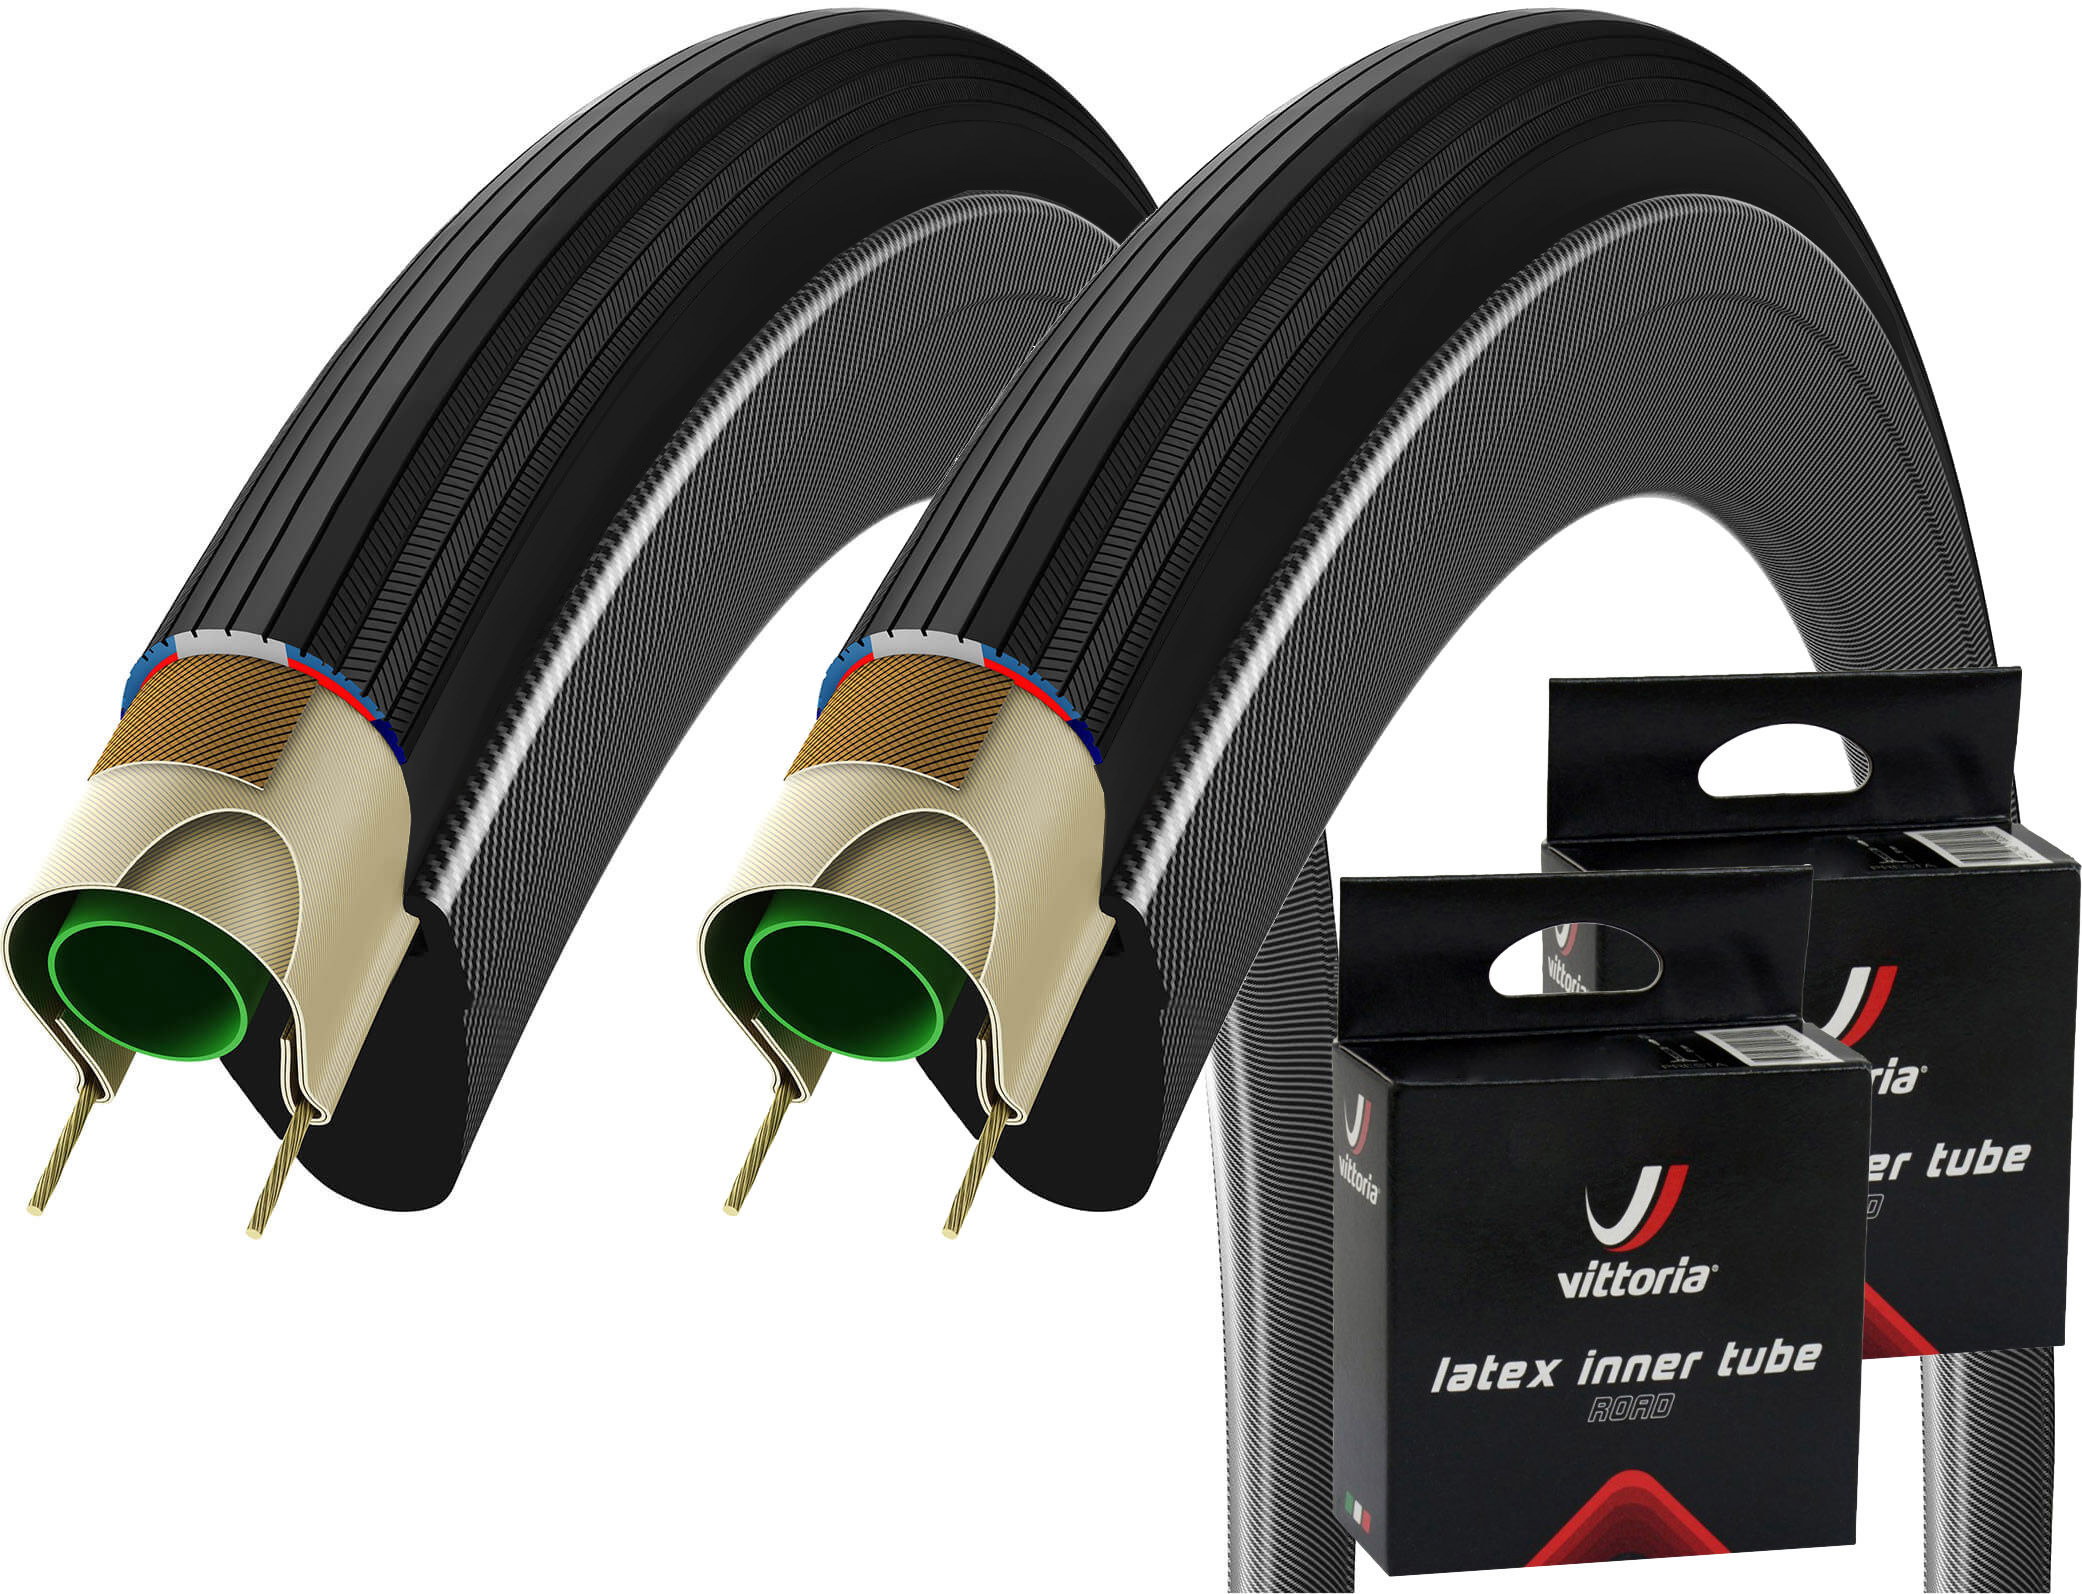 Vittoria Corsa G+ Isotech 700c Tyres and 2 Free Latex Tubes | Tyres